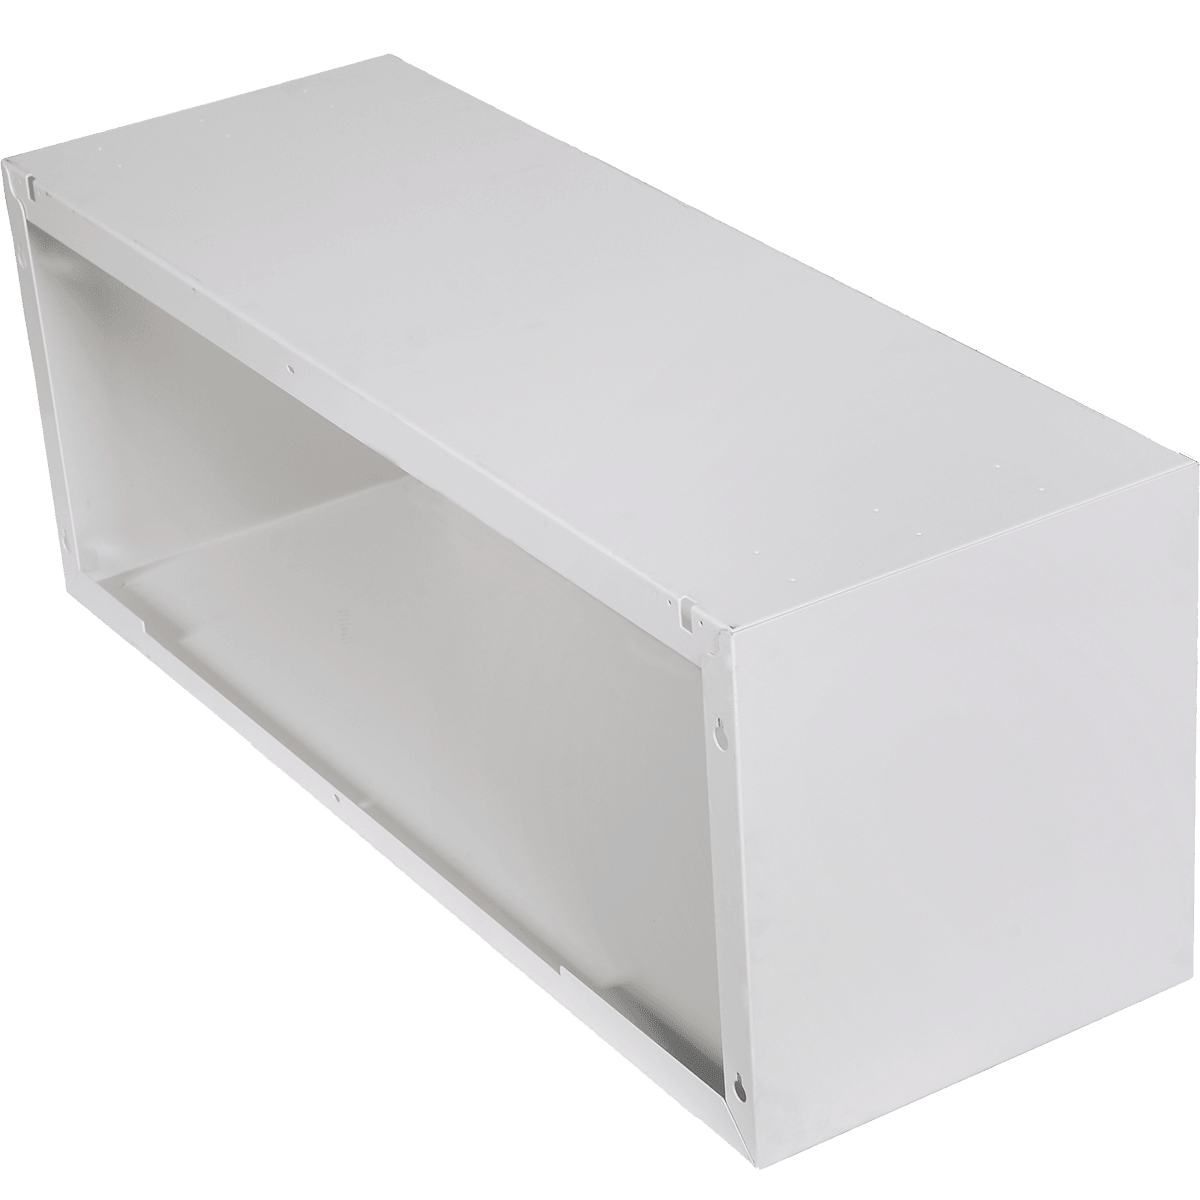 Buy Cheap Perfect Aire PTAC Wall Sleeve with Drain Kit